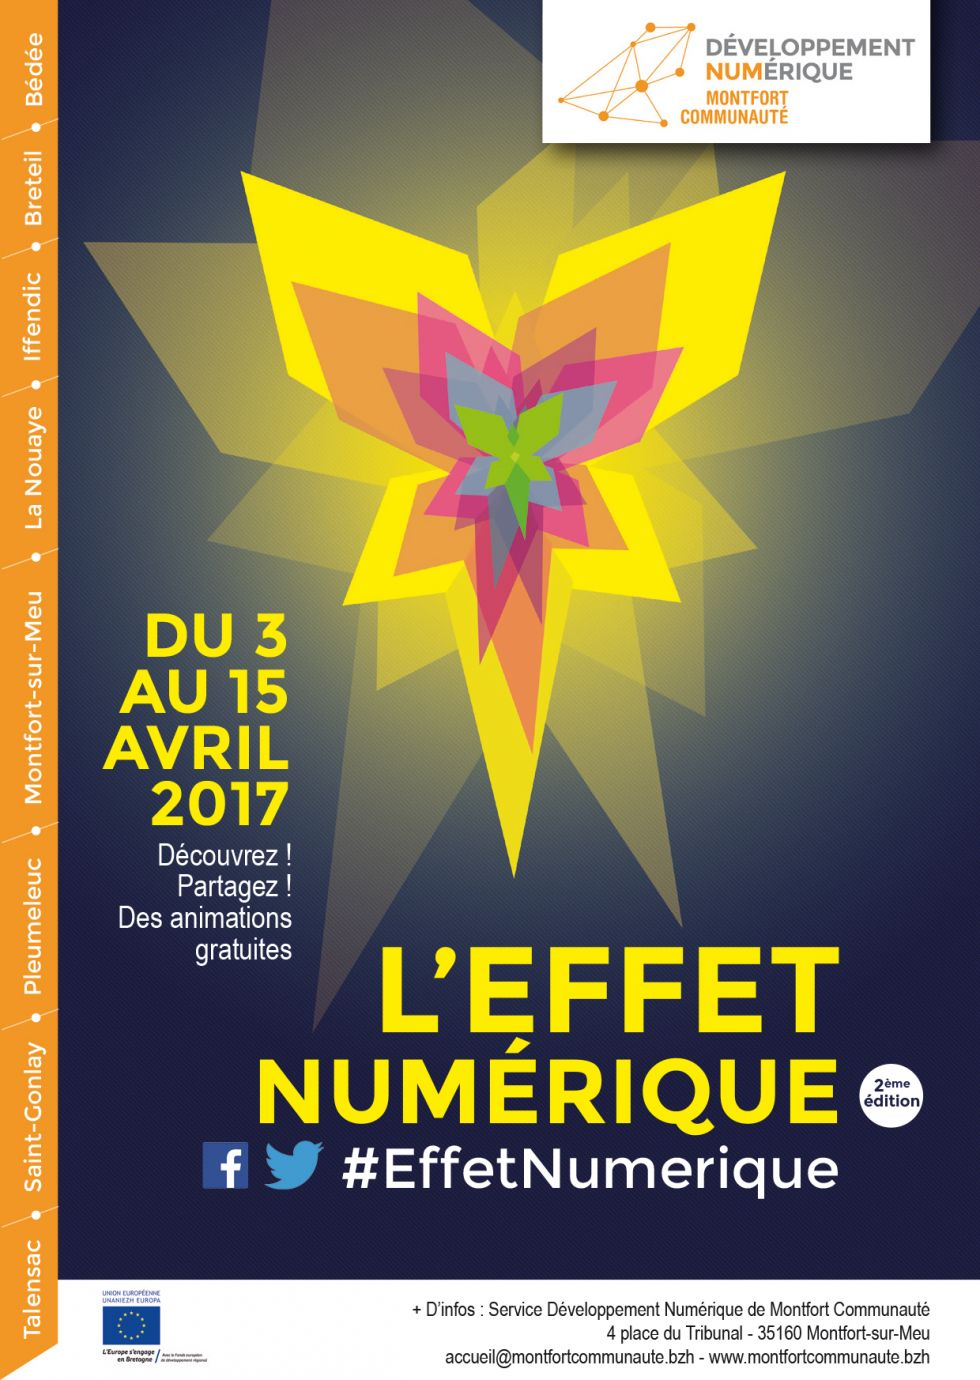 .@MontfortComCom organise du 4 au 15 avril la 2e édition de l'#EffetNumérique https://t.co/5pGKiT3PuY https://t.co/M4pJTIqdEK